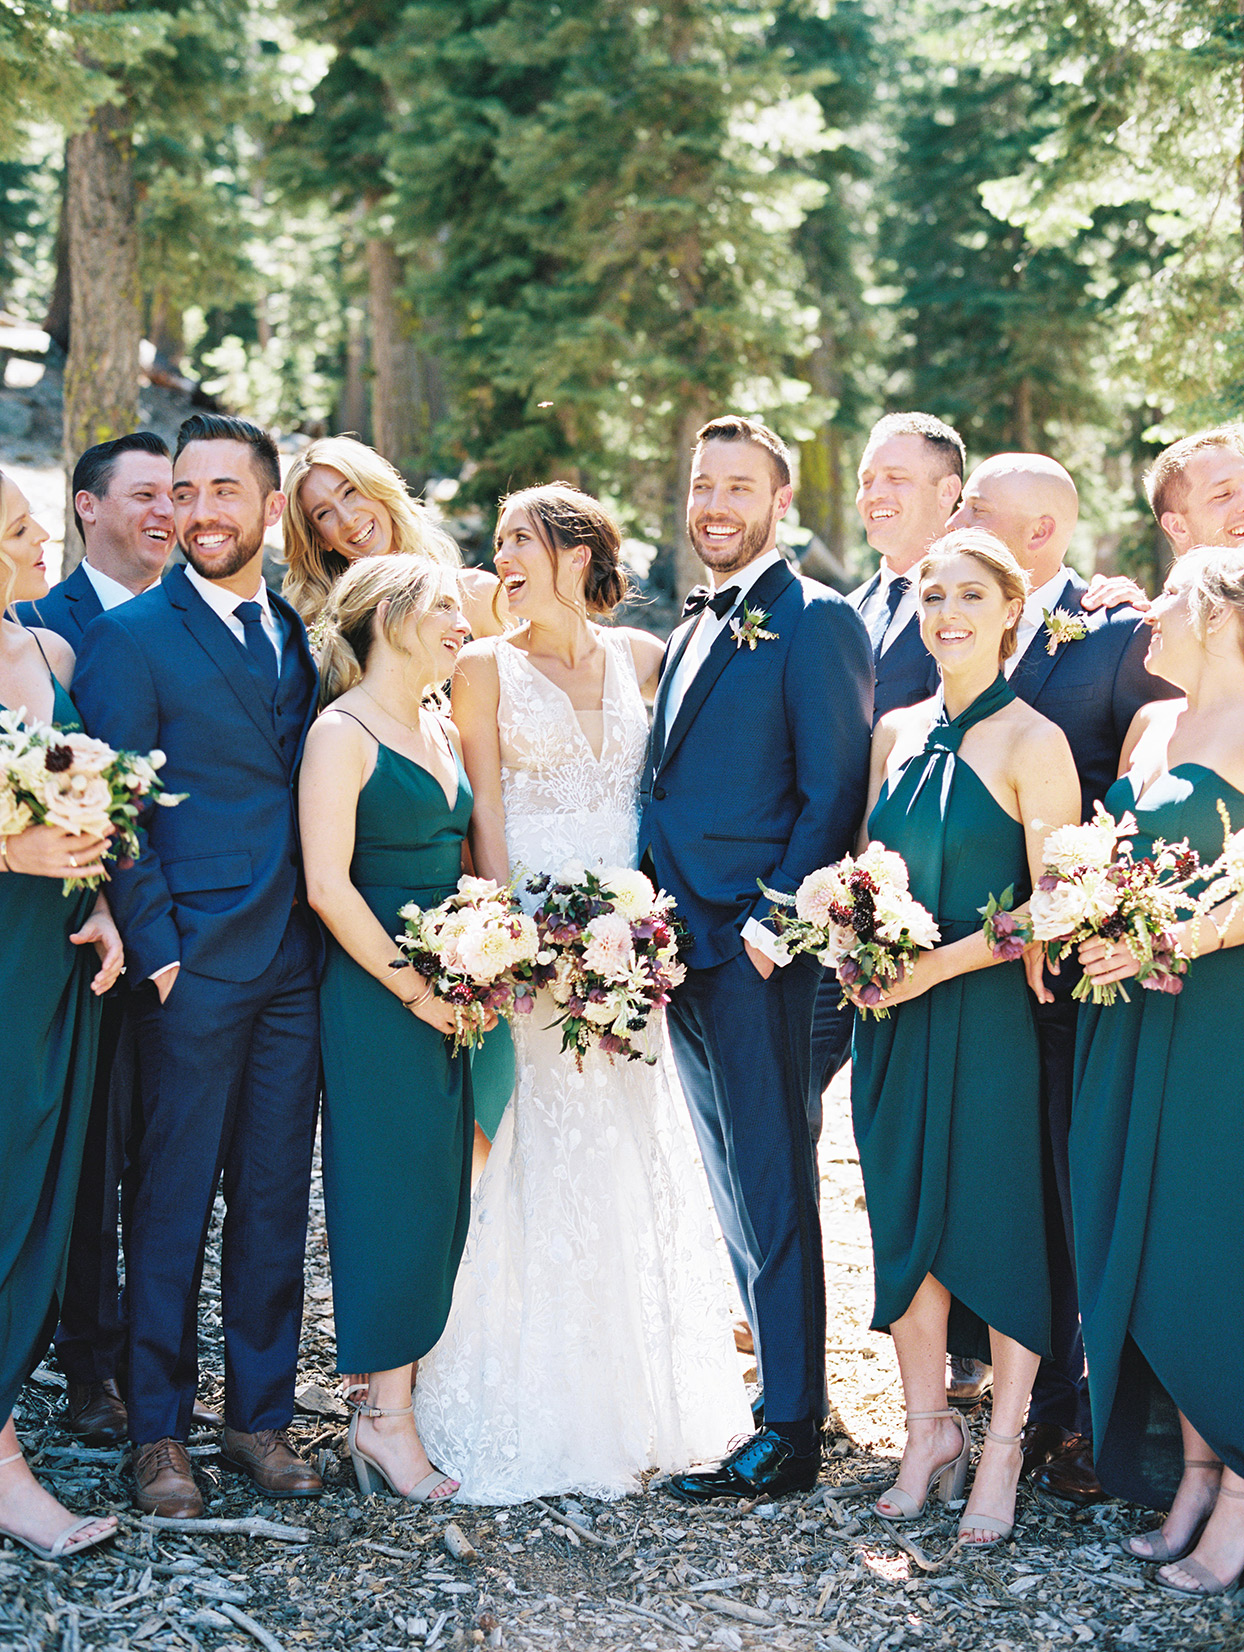 wedding party in blue and teal with purple tones bouquets